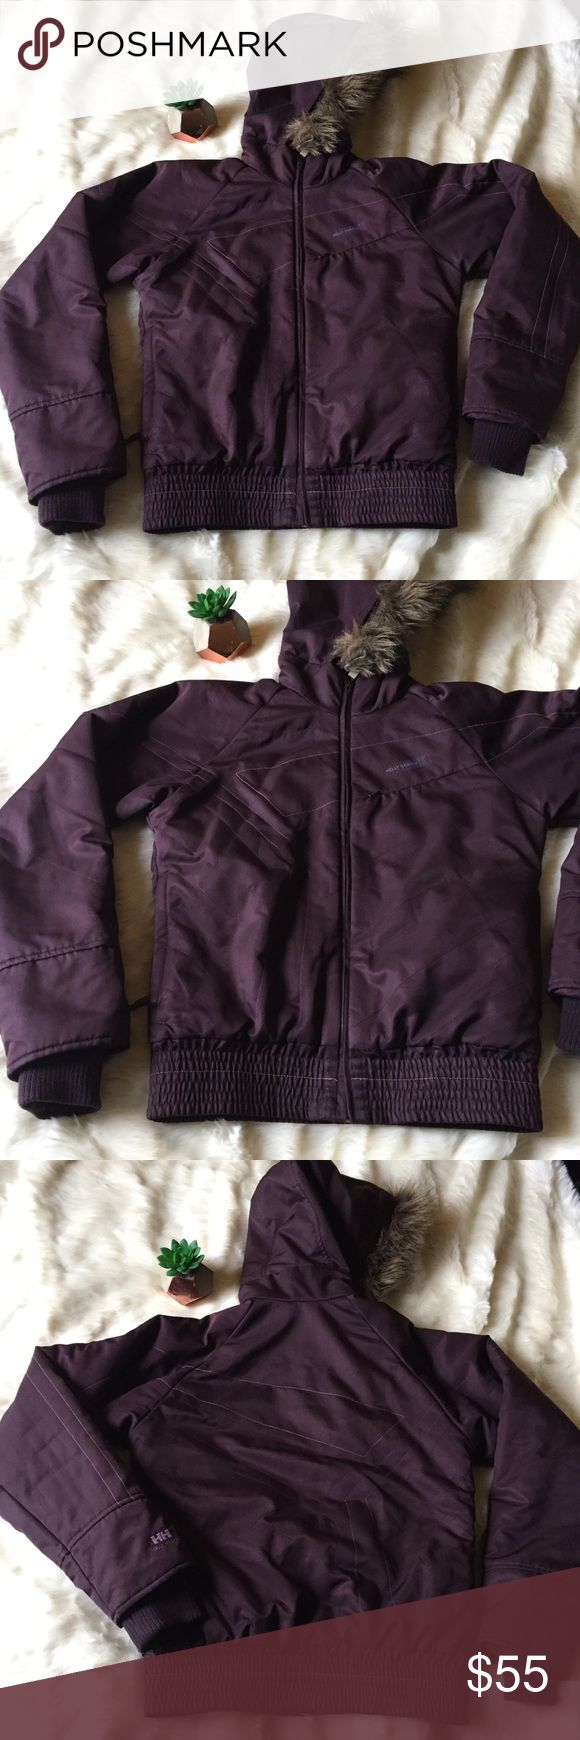 Helly Hansen Purple Jacket Helly Hansen purple jacket. Removable hood, size XS, excellent used condition Helly Hansen Jackets & Coats Puffers